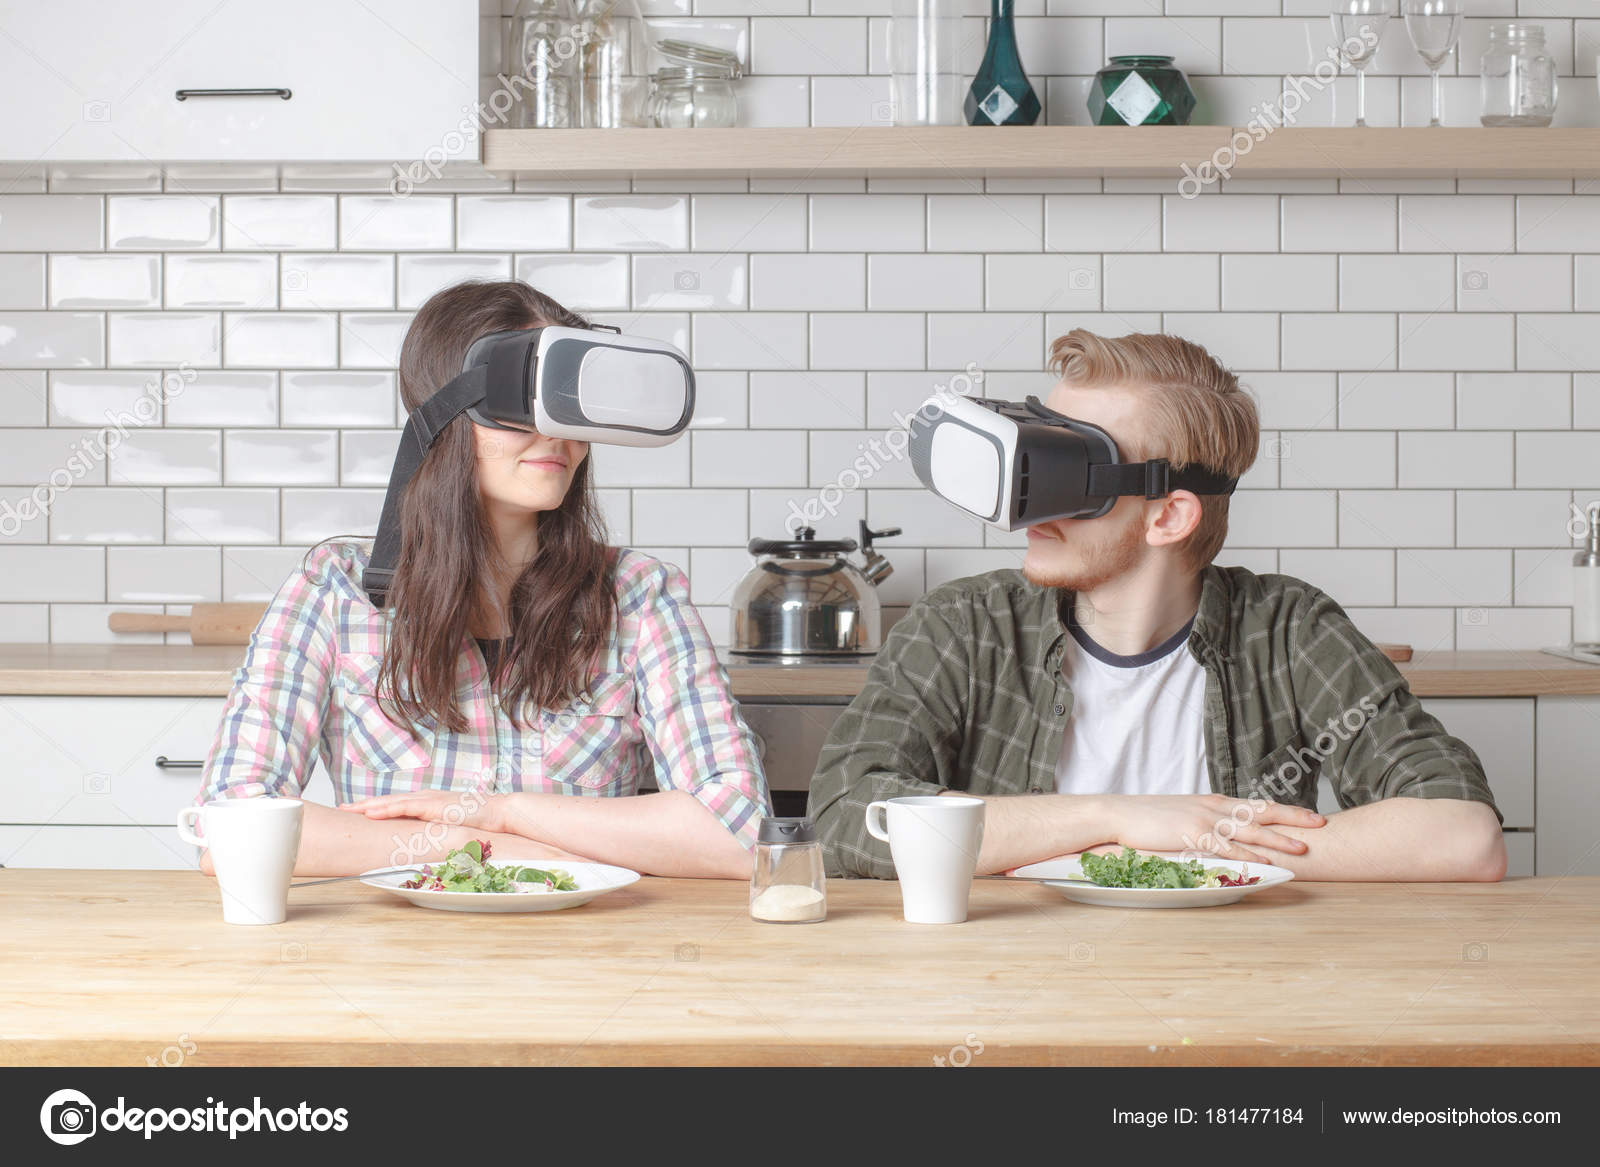 Virtual Reality Keuken : Paar in virtual reality bril in keuken u stockfoto schum